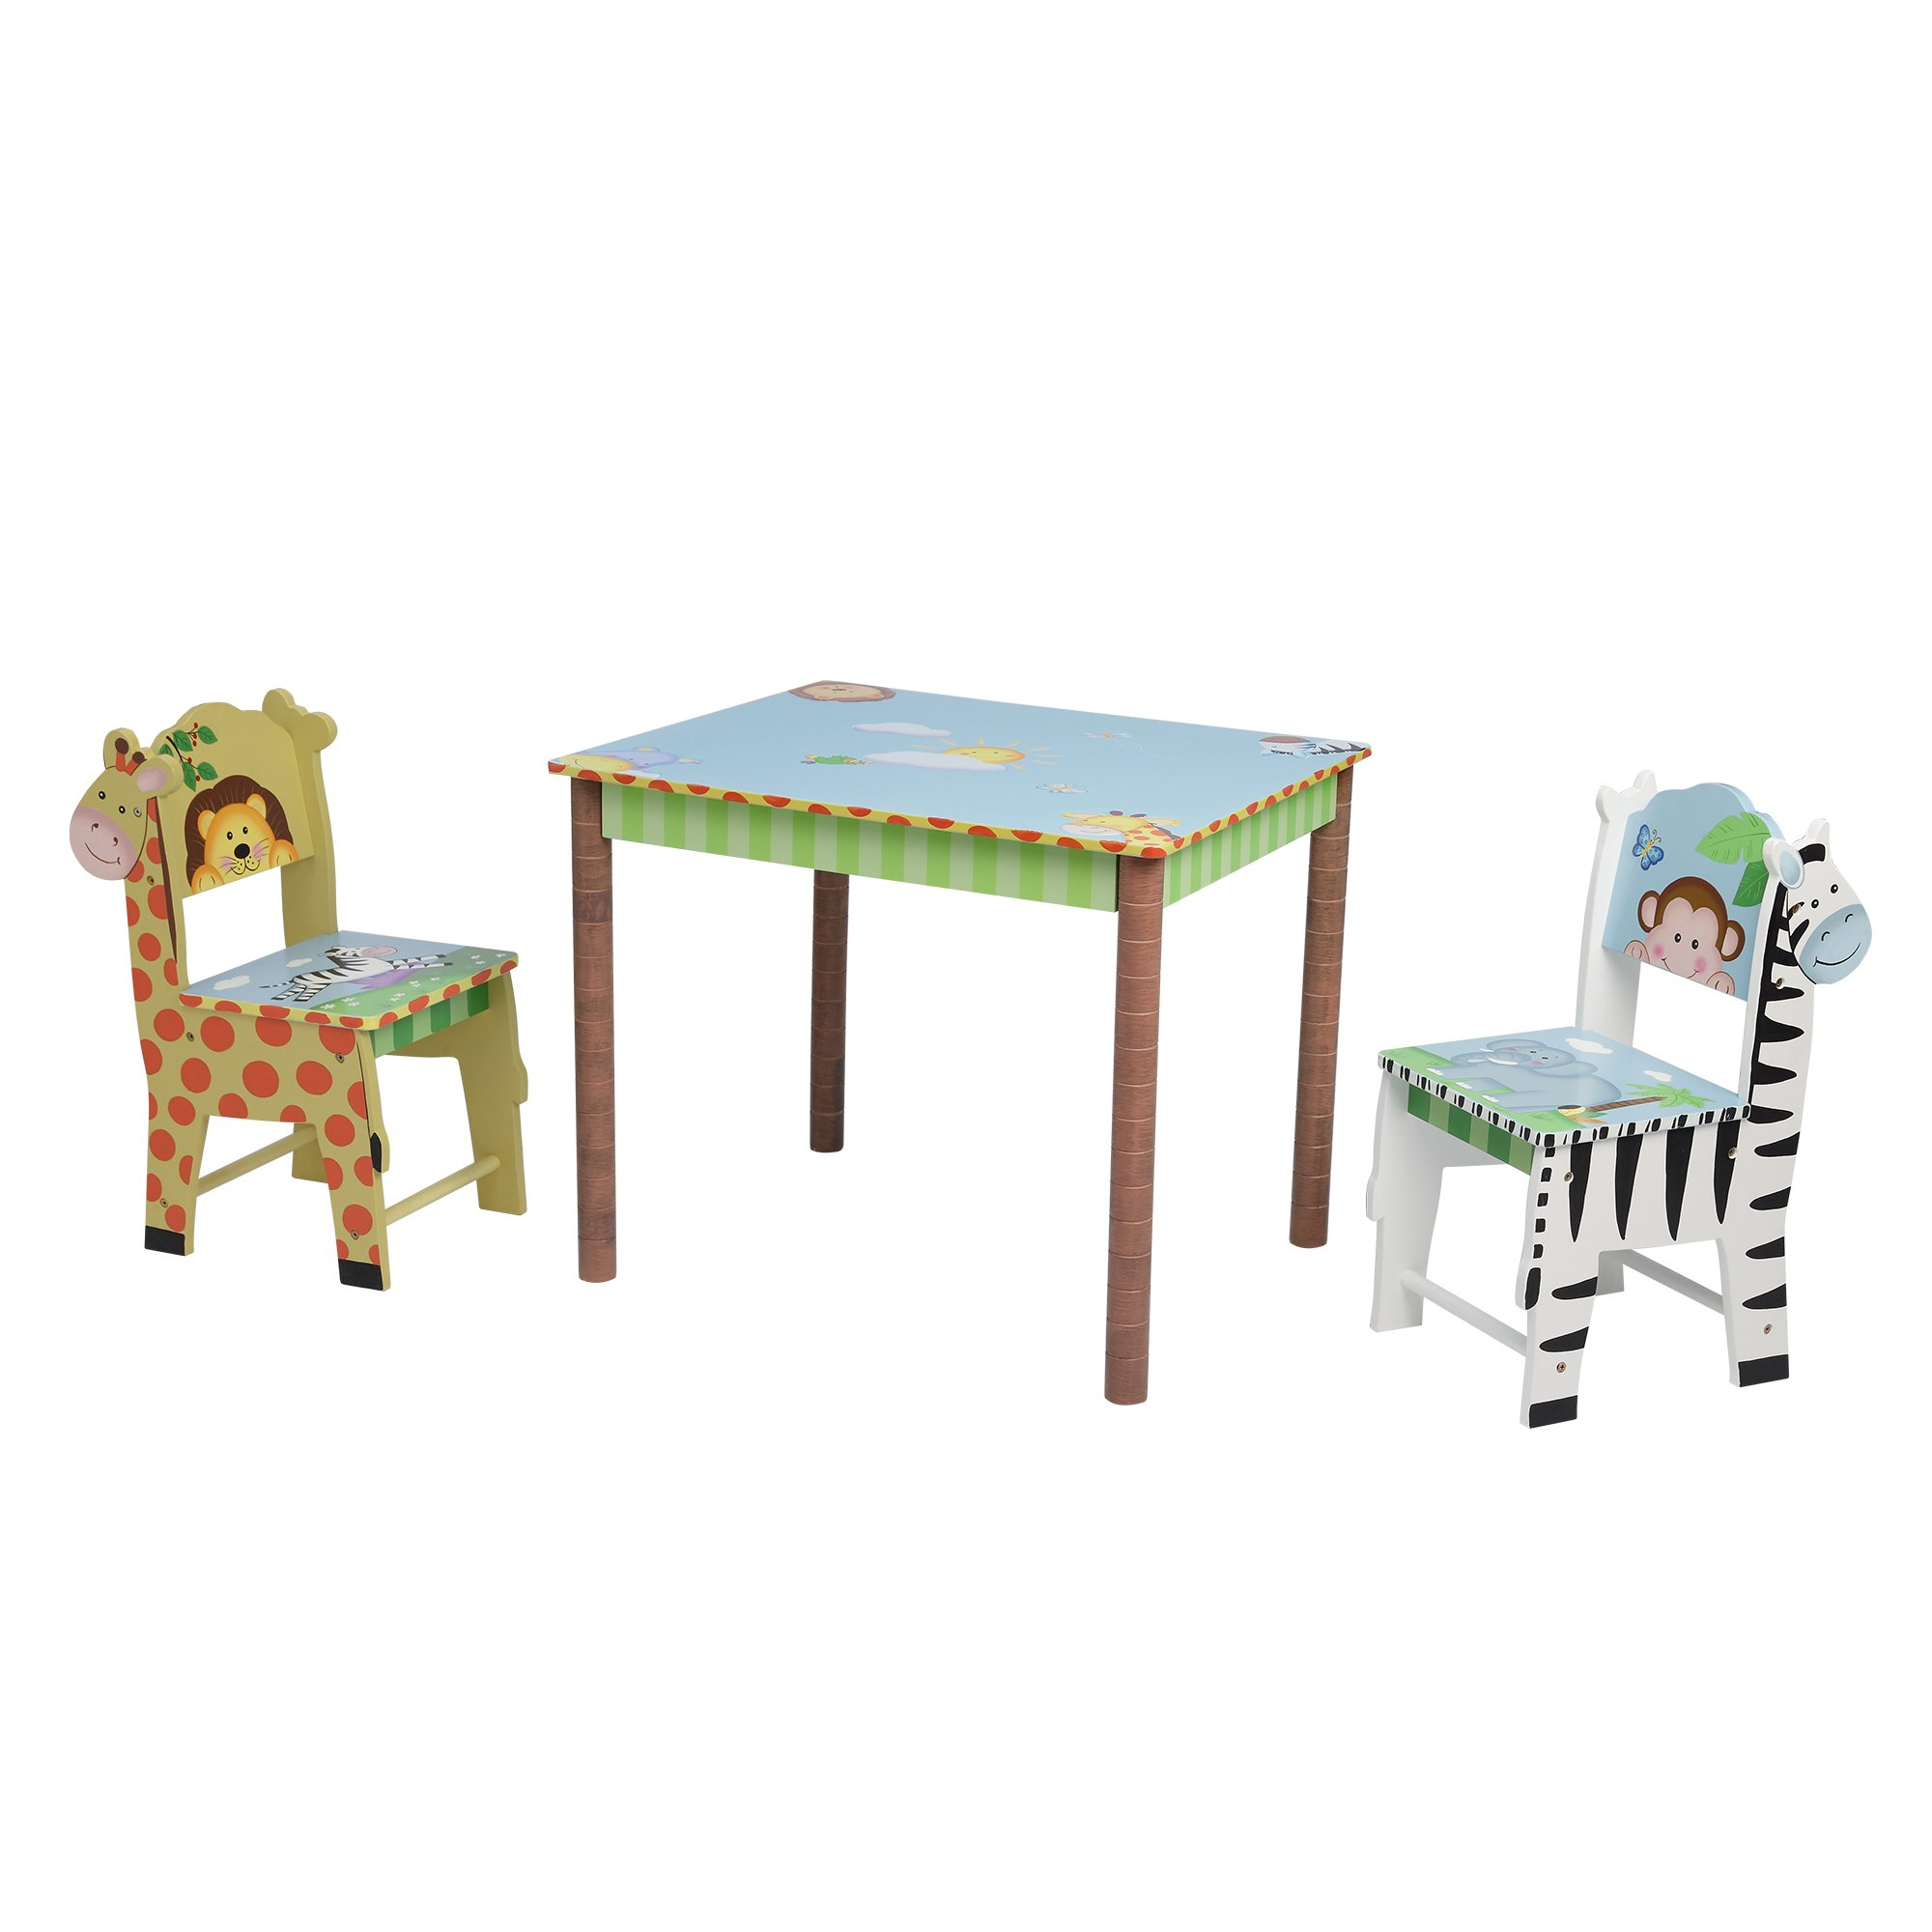 Fantasy Fields - Sunny Safari Thematic Hand Crafted Kids Wooden Table and 2 Chairs Set Imagination Inspiring Hand Crafted & Hand Painted Details Non-Toxic, Lead Free Water-based Paint by Teamson Design Corp